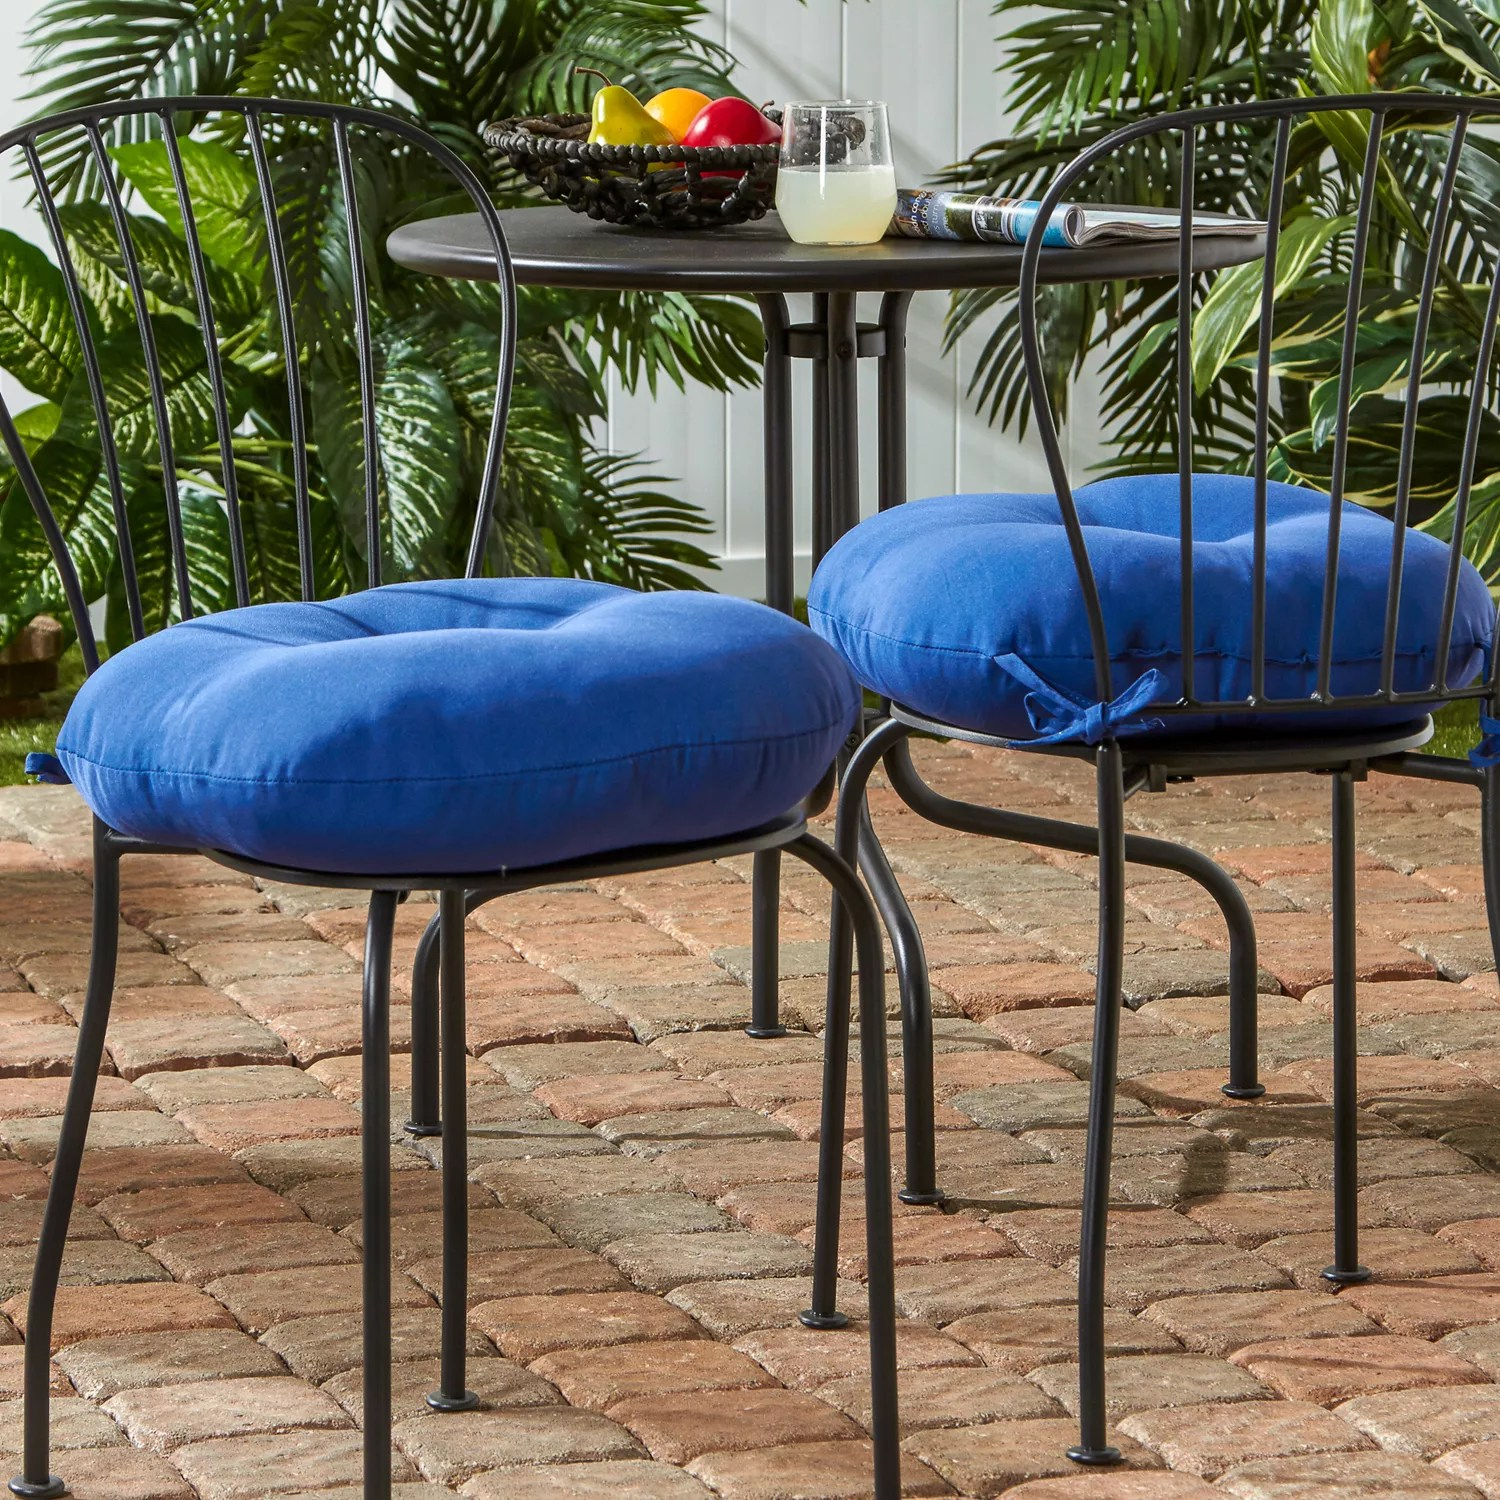 greendale home fashions 2 pk round outdoor bistro cushions 18